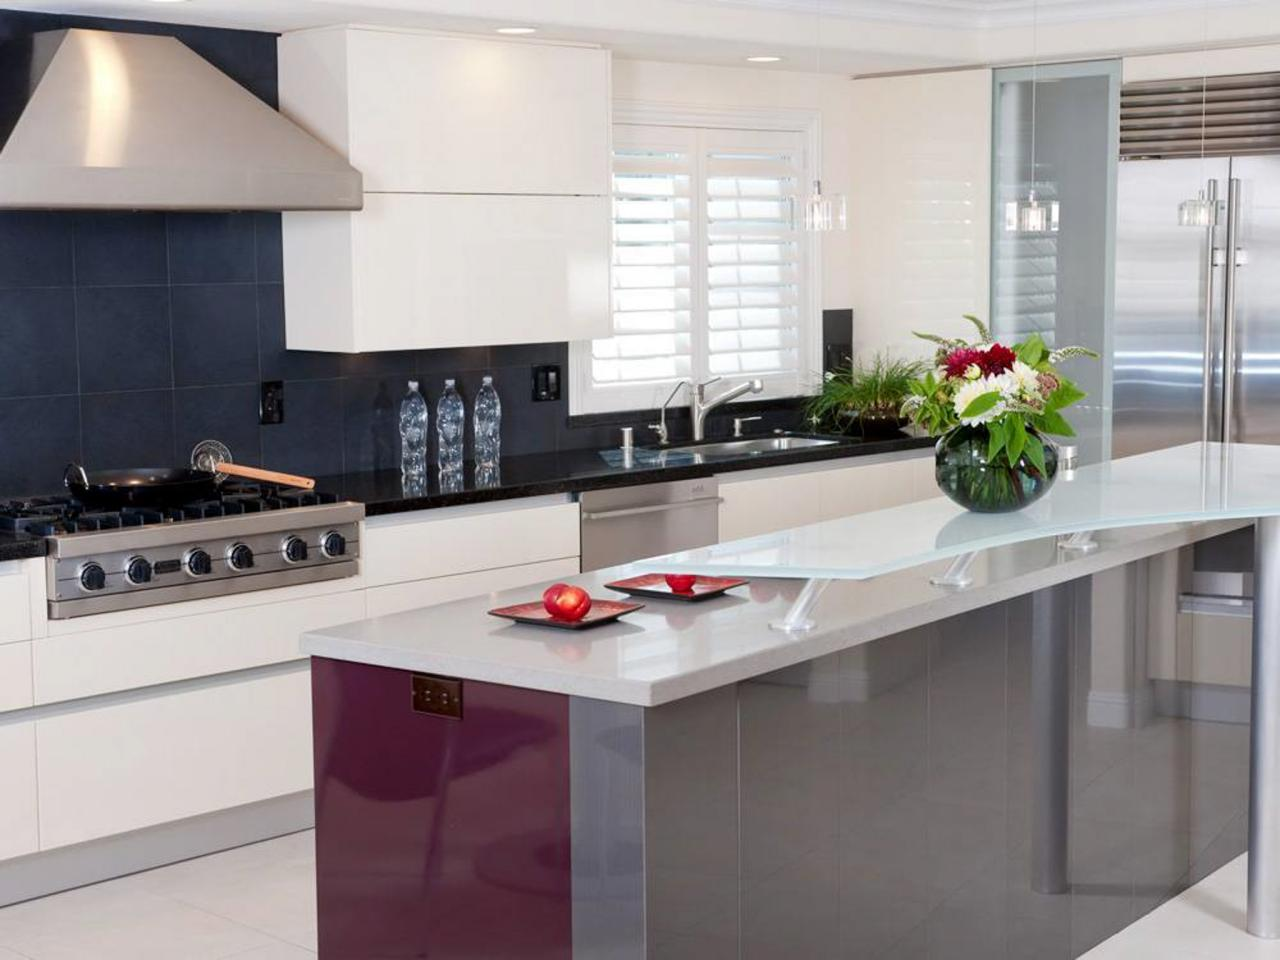 Modern and simple styles of kitchens